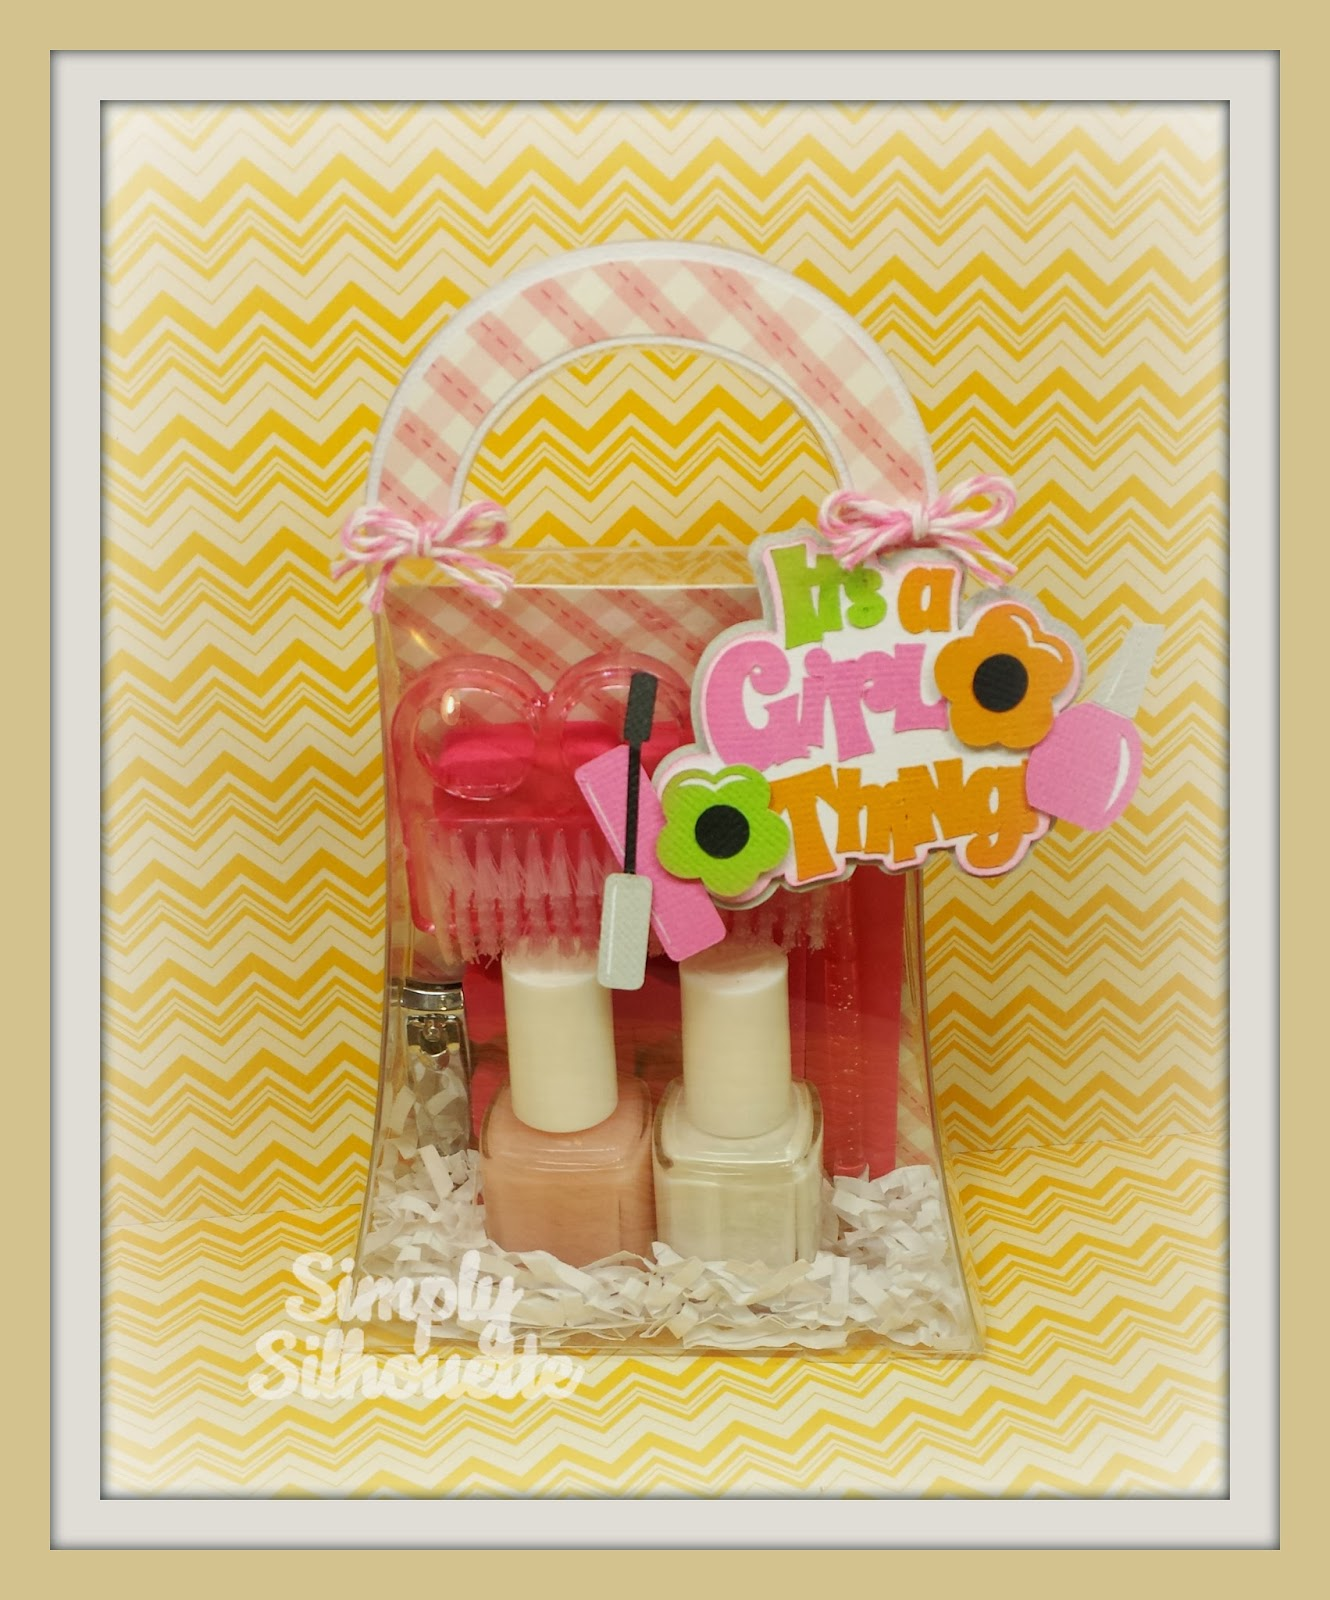 http://www.simplysilhouette.com/2014/02/its-girl-thing.htm